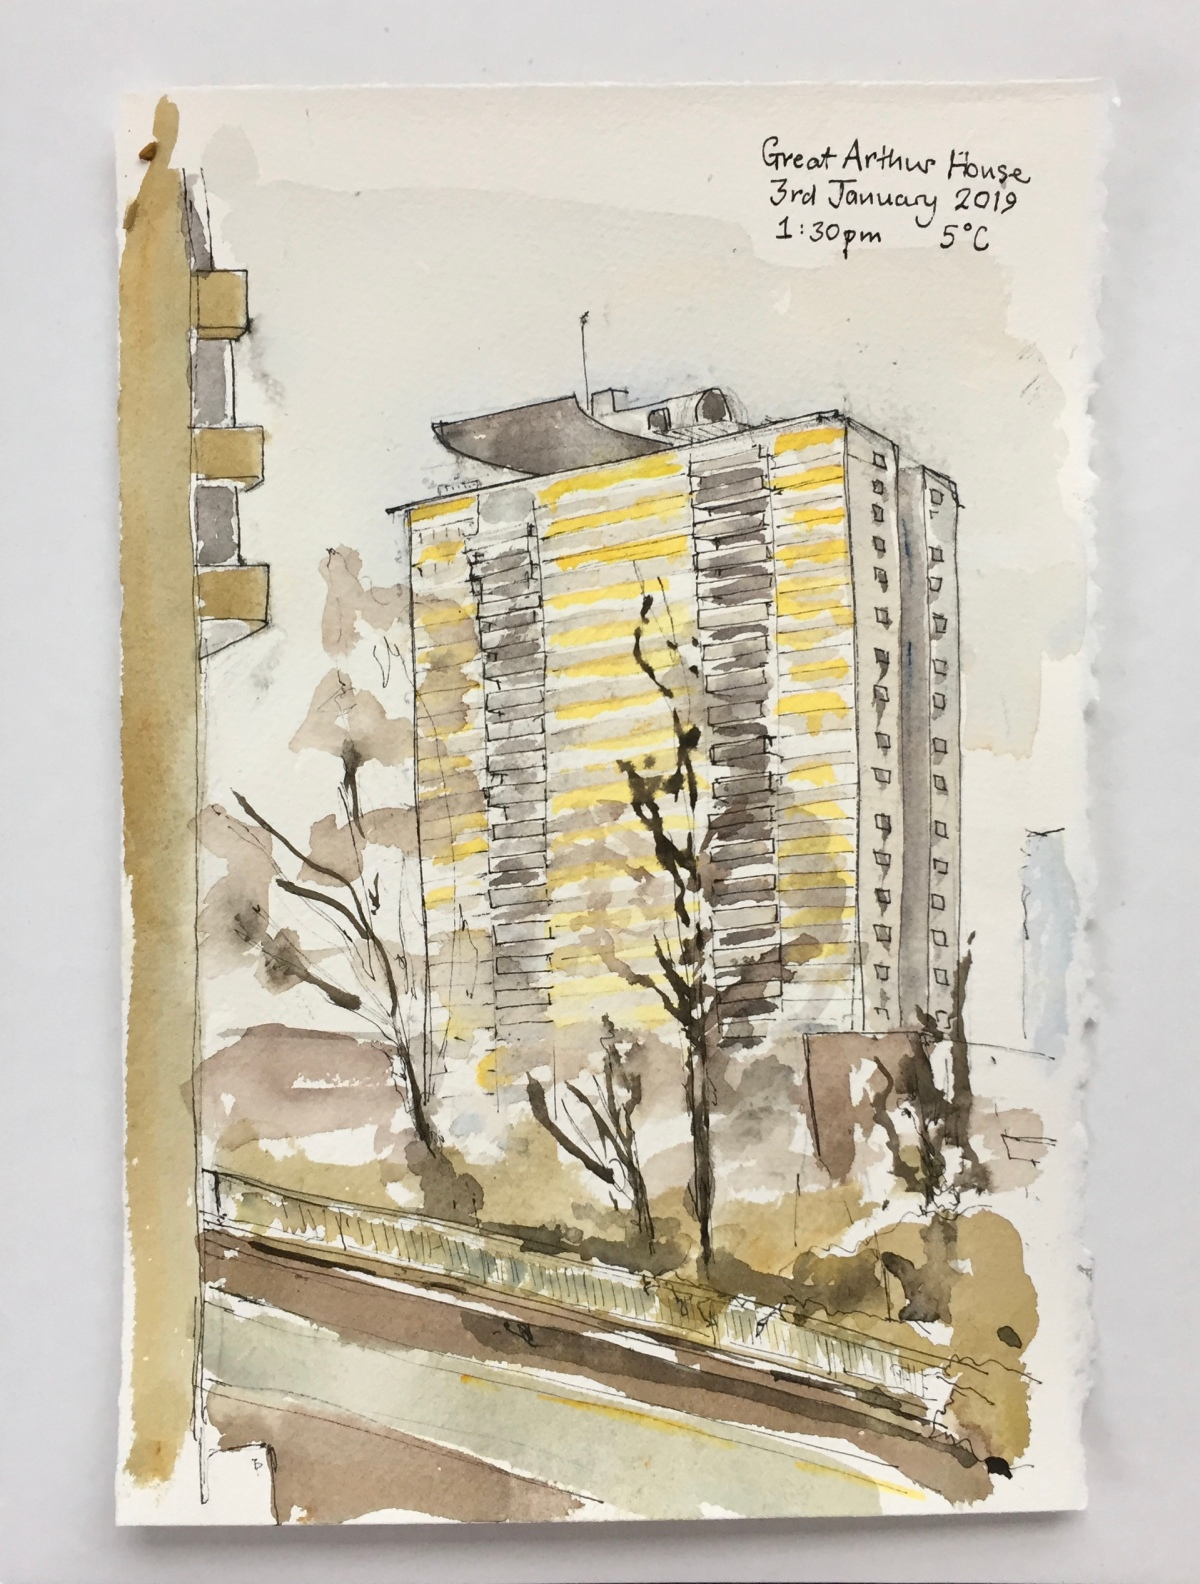 Great Arthur House from the BarbicanPodium